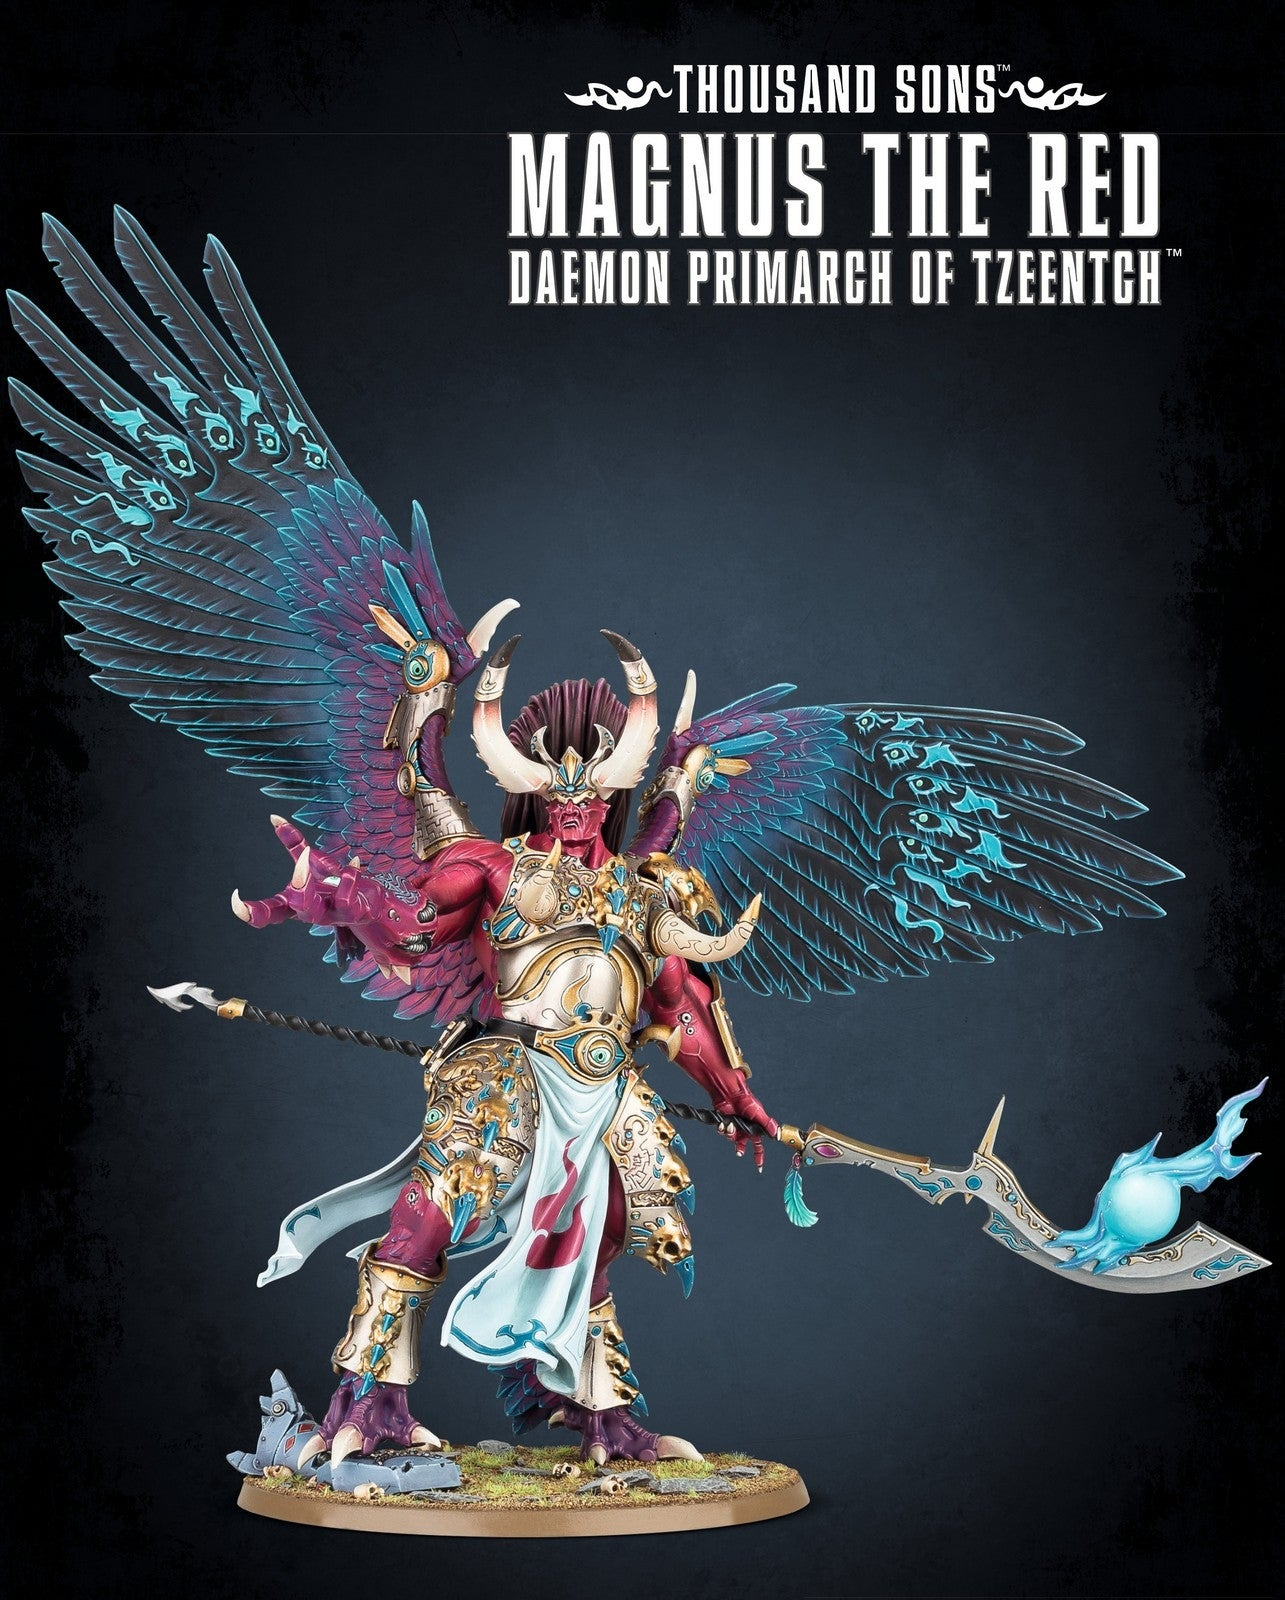 Magnus The Red, Daemon Primarch of Tzeentch